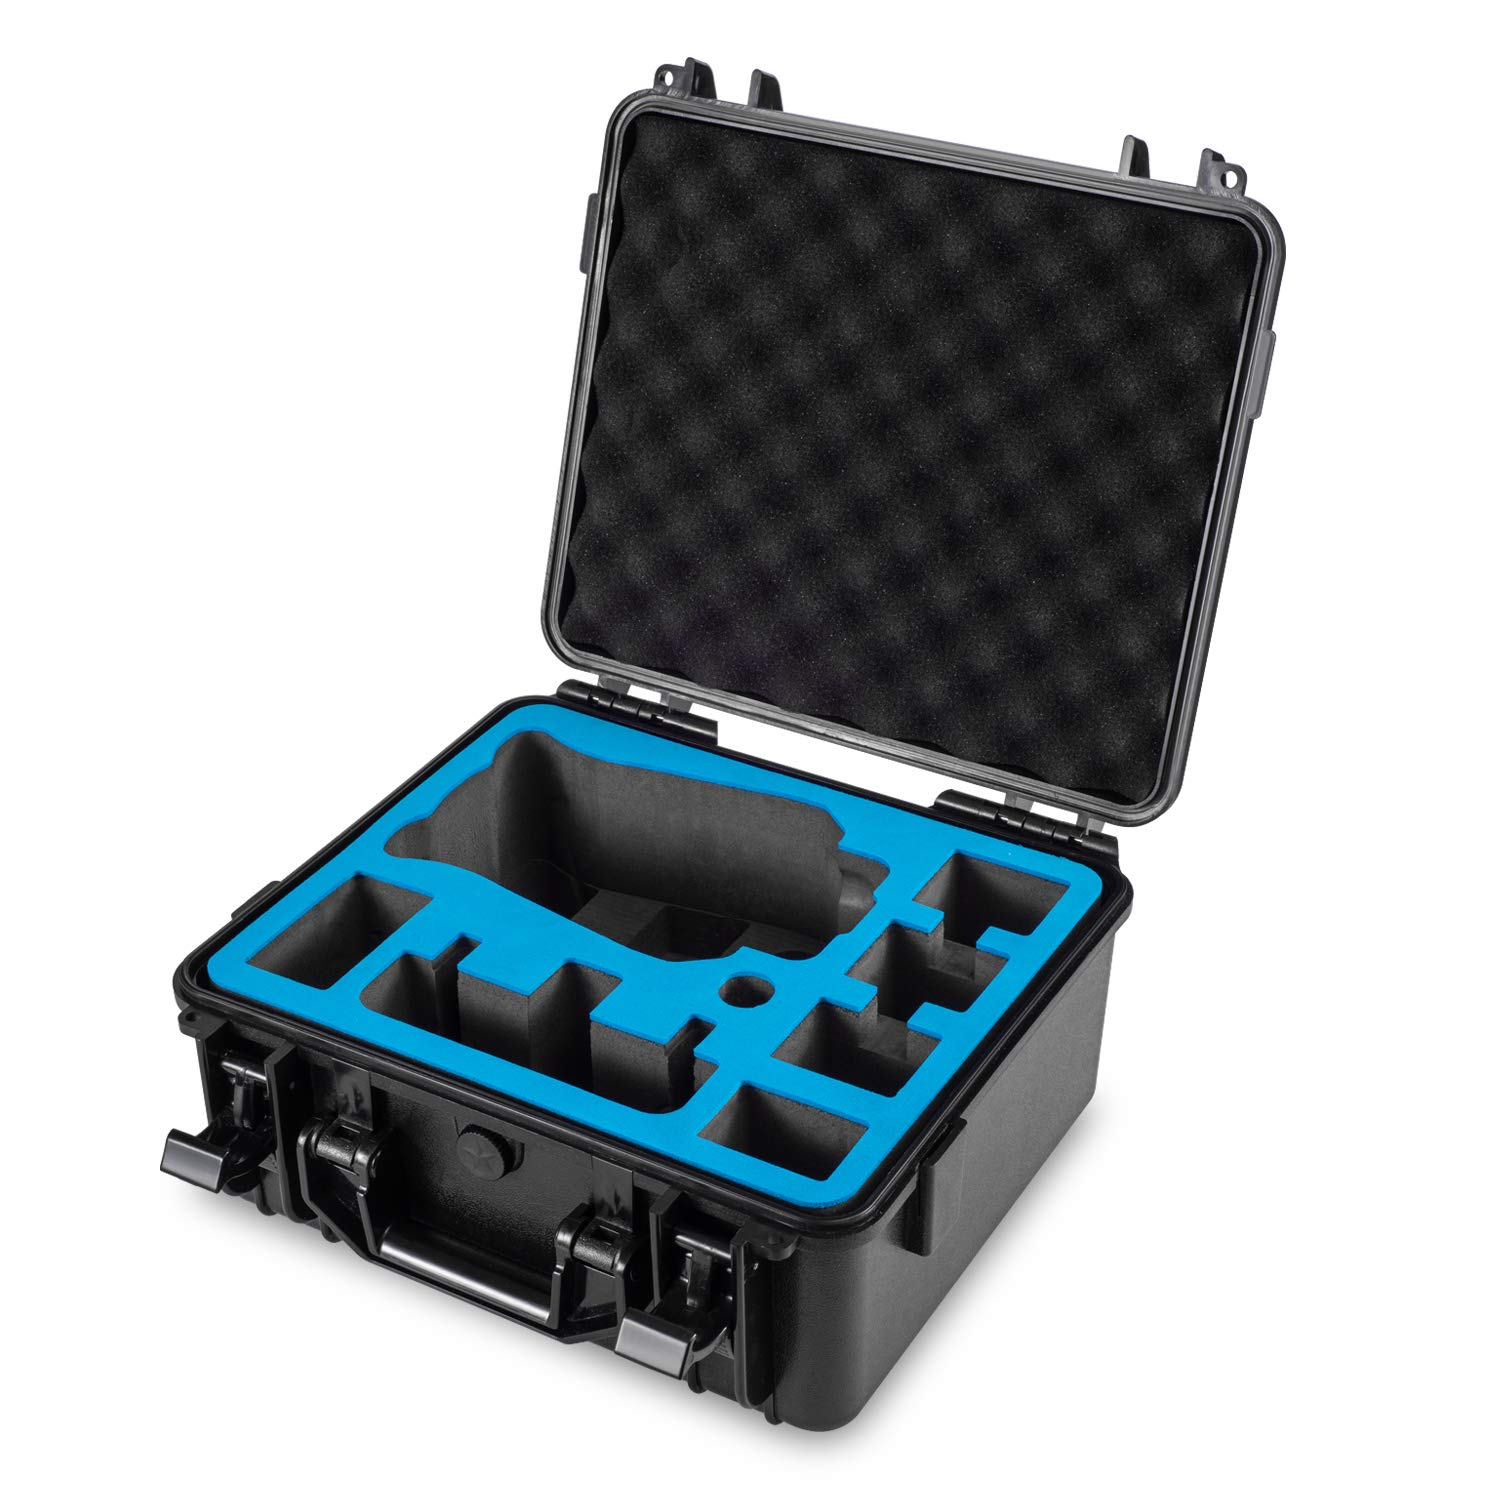 Tyfco Autel Drone Hard Case,for Autel Evo, Waterproof and Shockproof